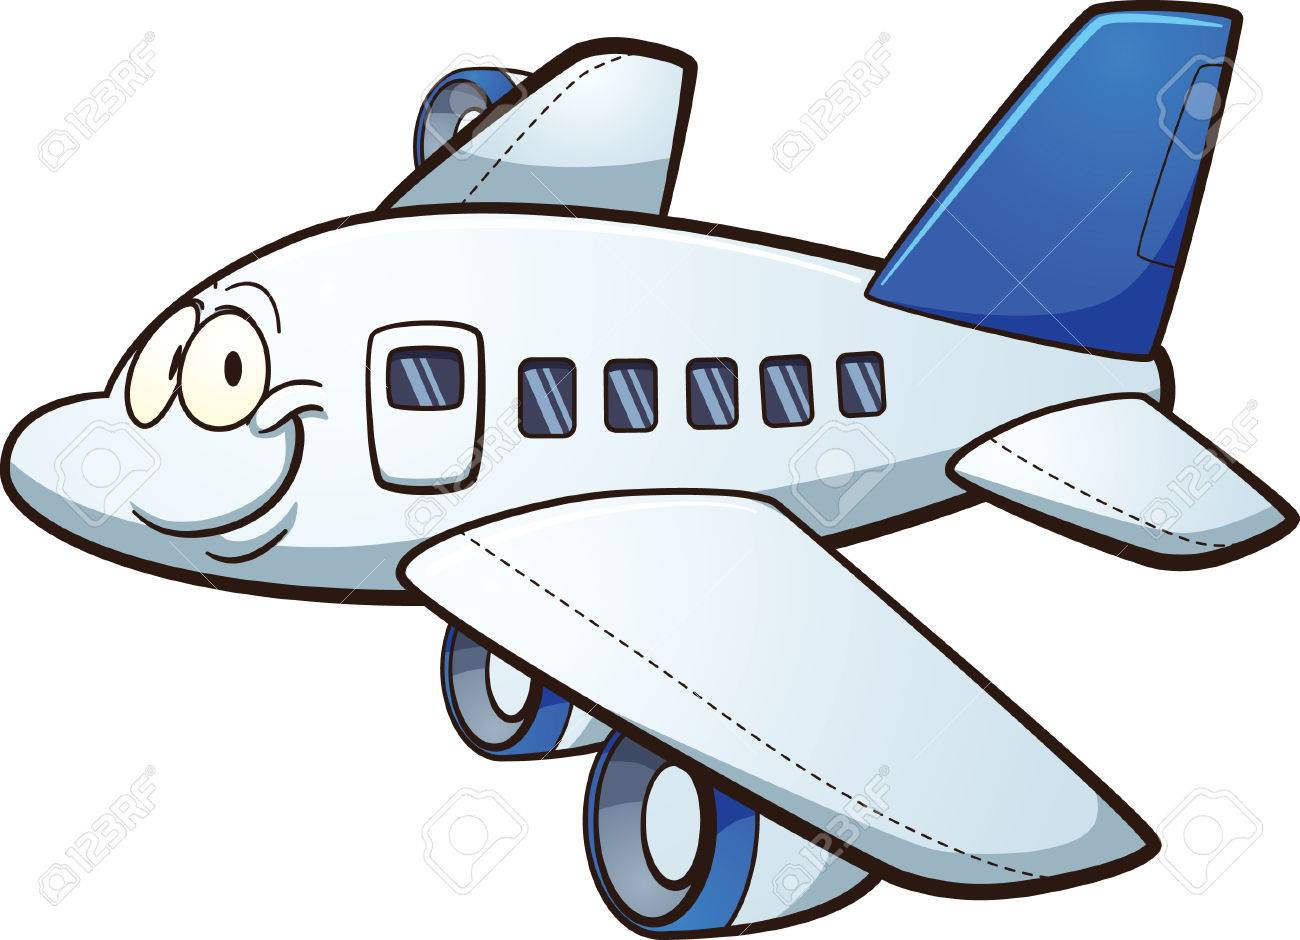 Happy Cartoon Airplane Vector Clip Art Illustration With Simple